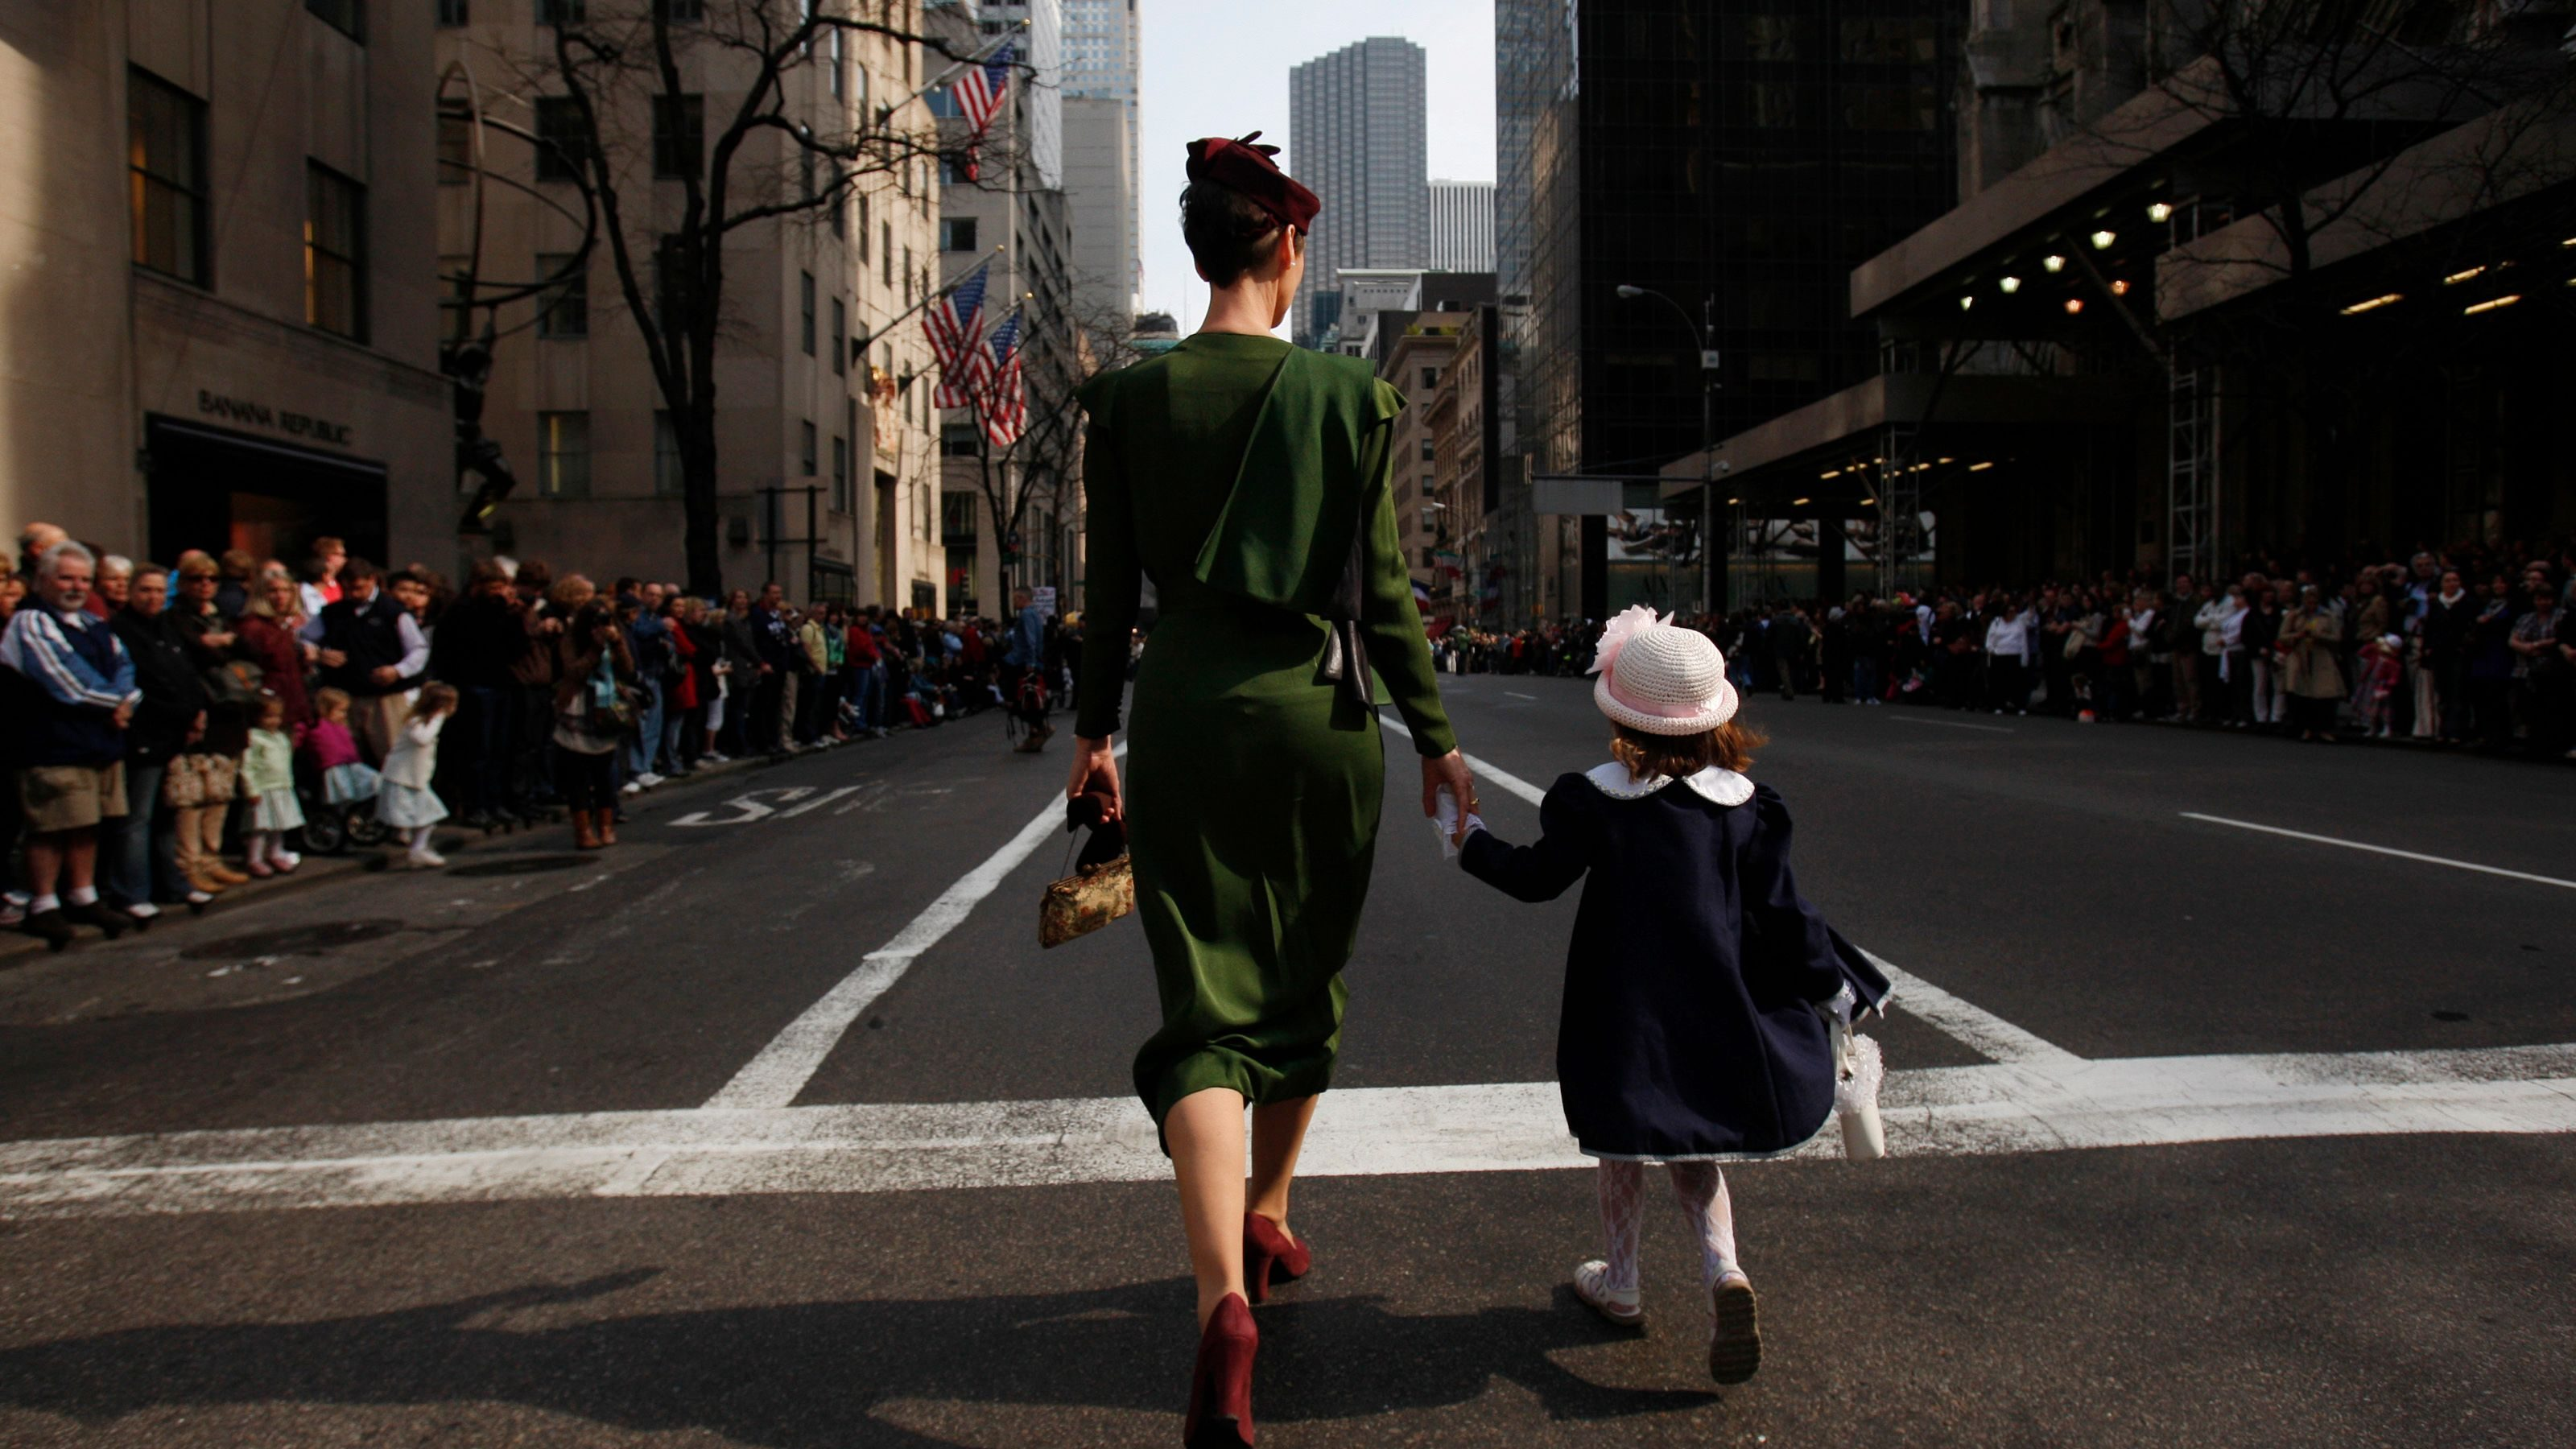 aae8f533abf 23 American mothers on what it's like to go back to work after maternity  leave